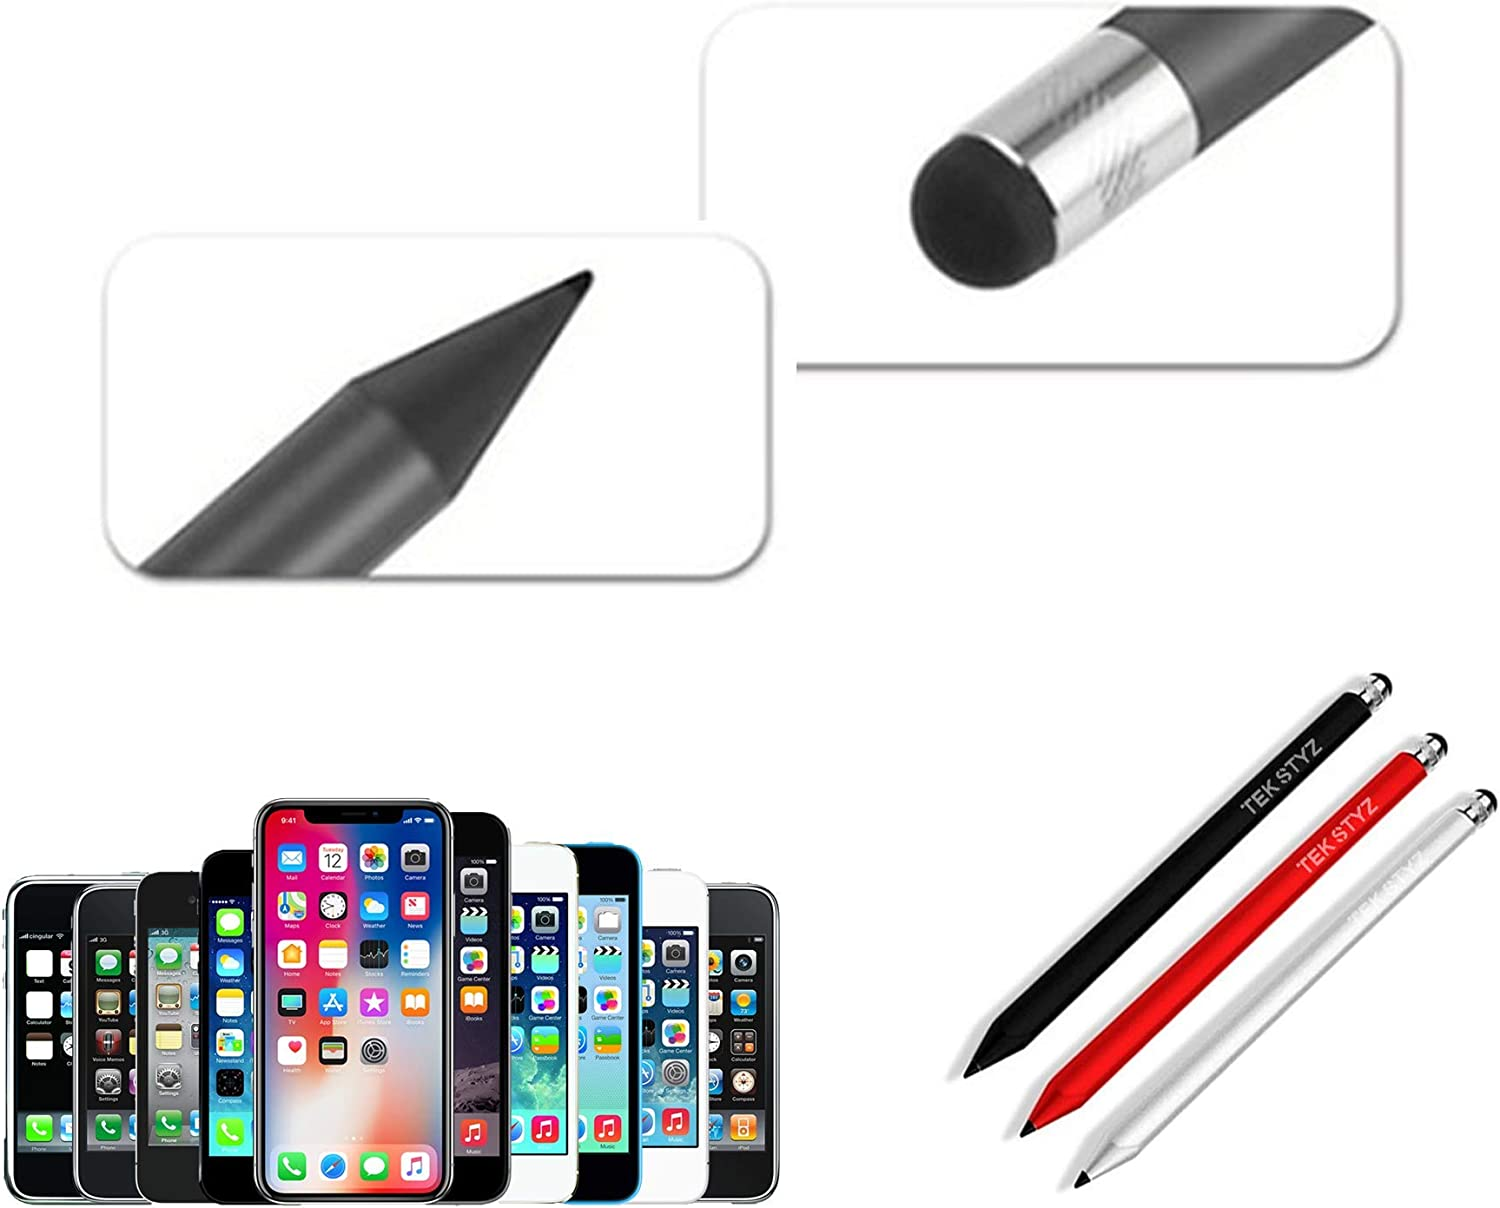 Pen Works for Sonim XP5560 Bolt with Custom High Sensitivity Touch and Black Ink! 3 Pack - Silver Red Black Tek Styz PRO Stylus